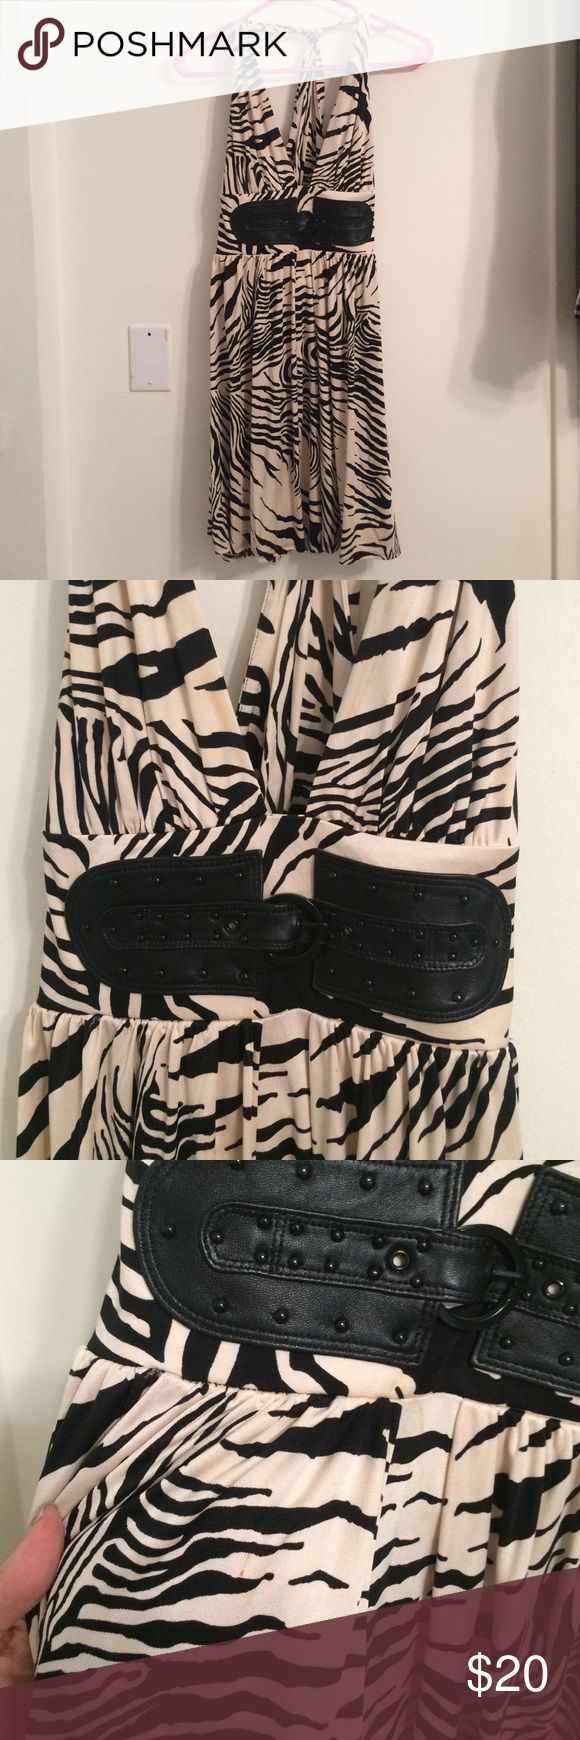 Marciano zebra print dress with leather detail Inside zipper with leather faux belt. Does have some makeup on neck and small spot ( I think it would come out being cleaned) Marciano Dresses Mini